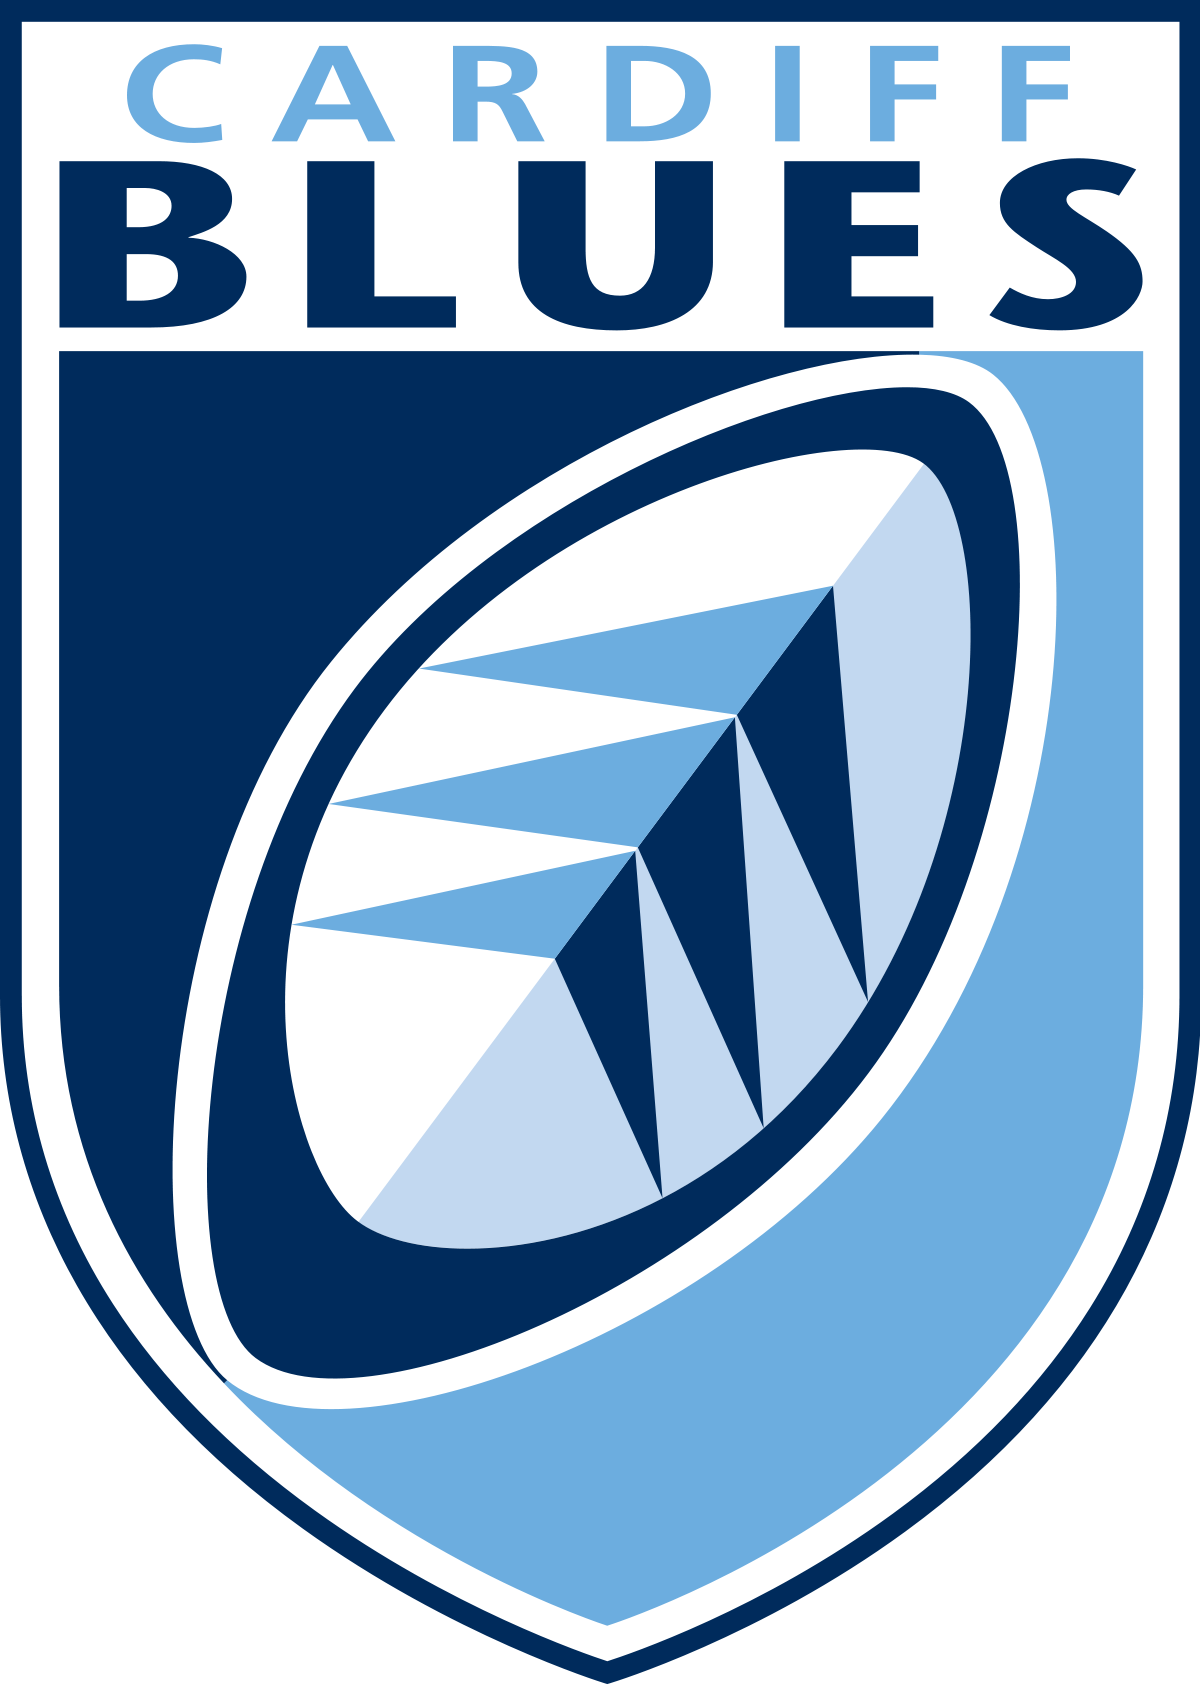 Cardiff Blues Rugby Logo in colour with clear background large